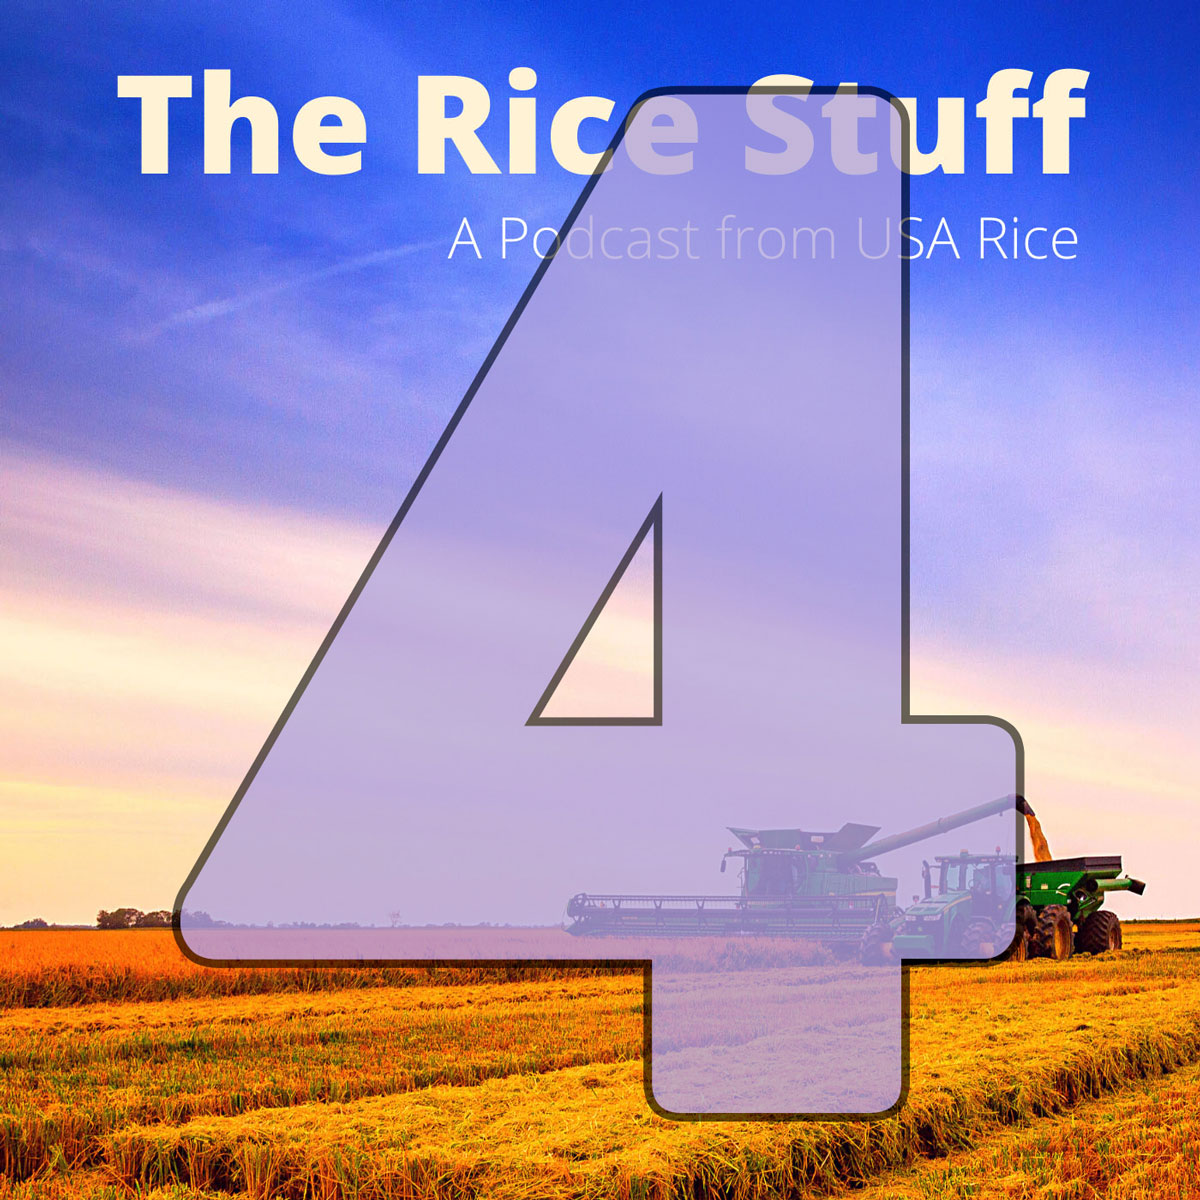 Number 4 superimposed over photo of combine and grain cart in mature rice field